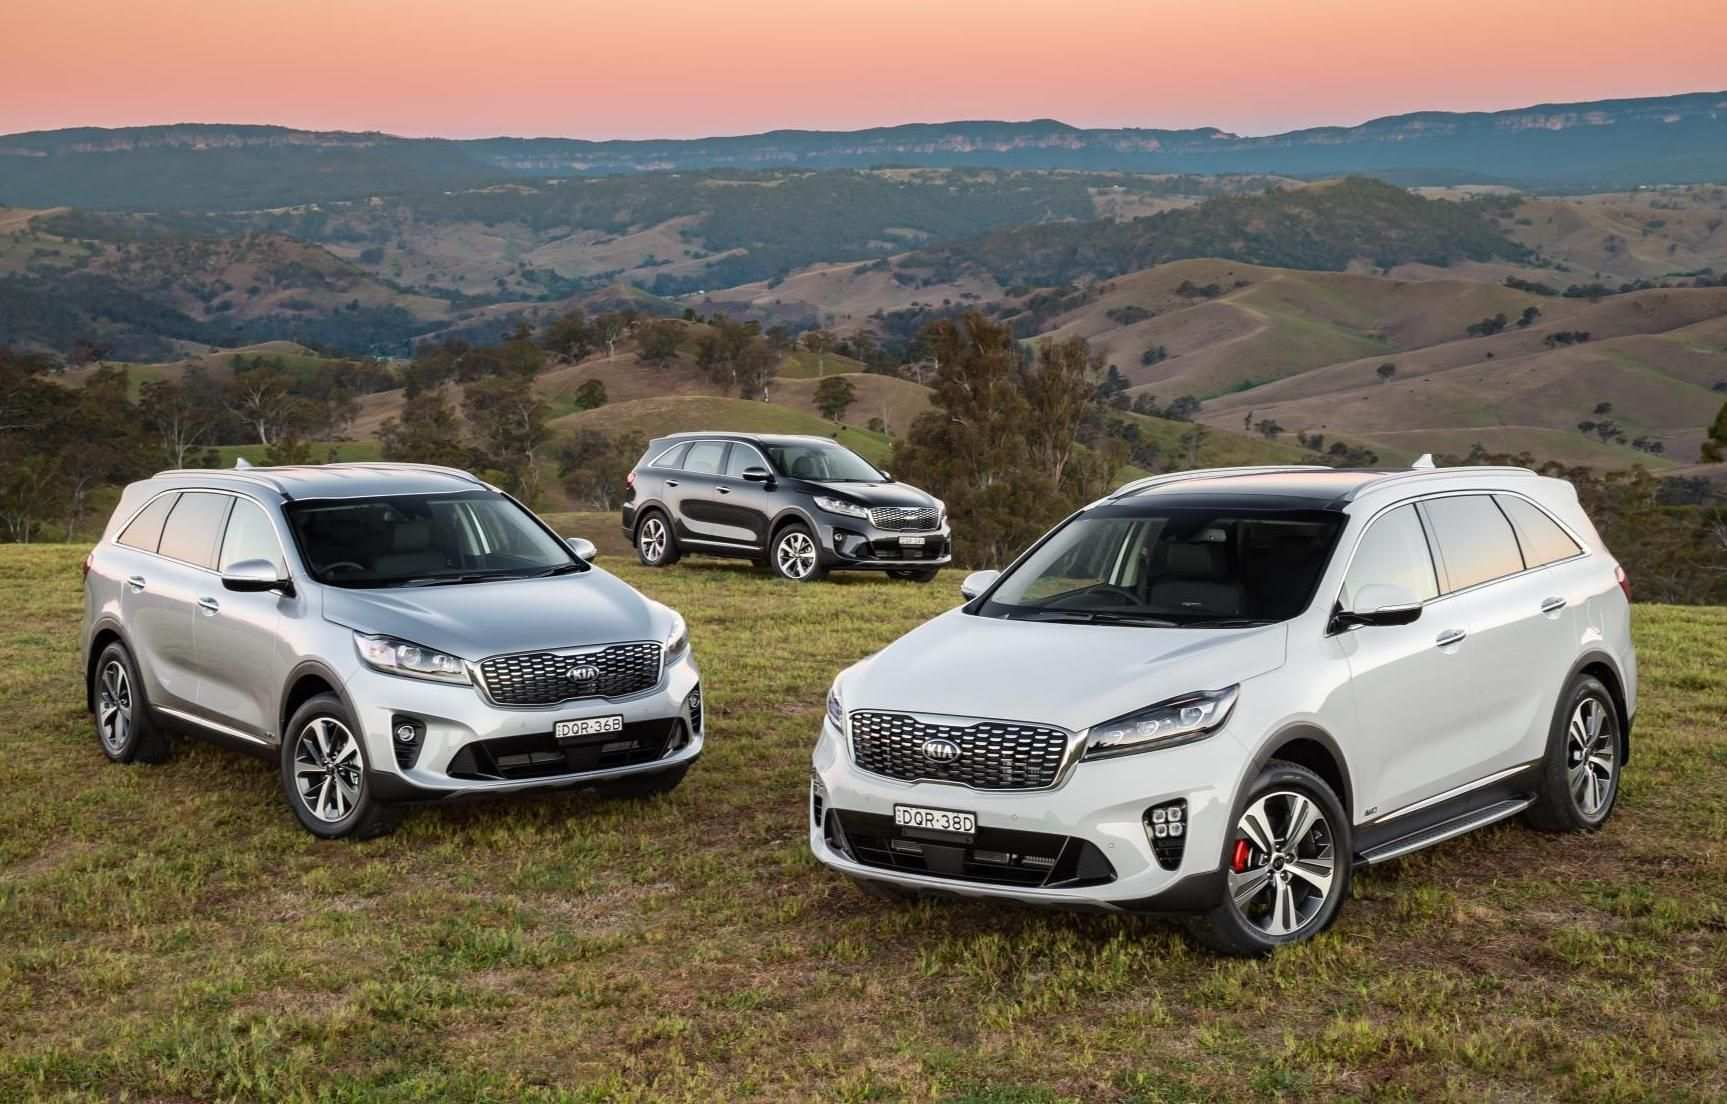 39 All New Kia Lineup 2019 Redesign and Concept for Kia Lineup 2019